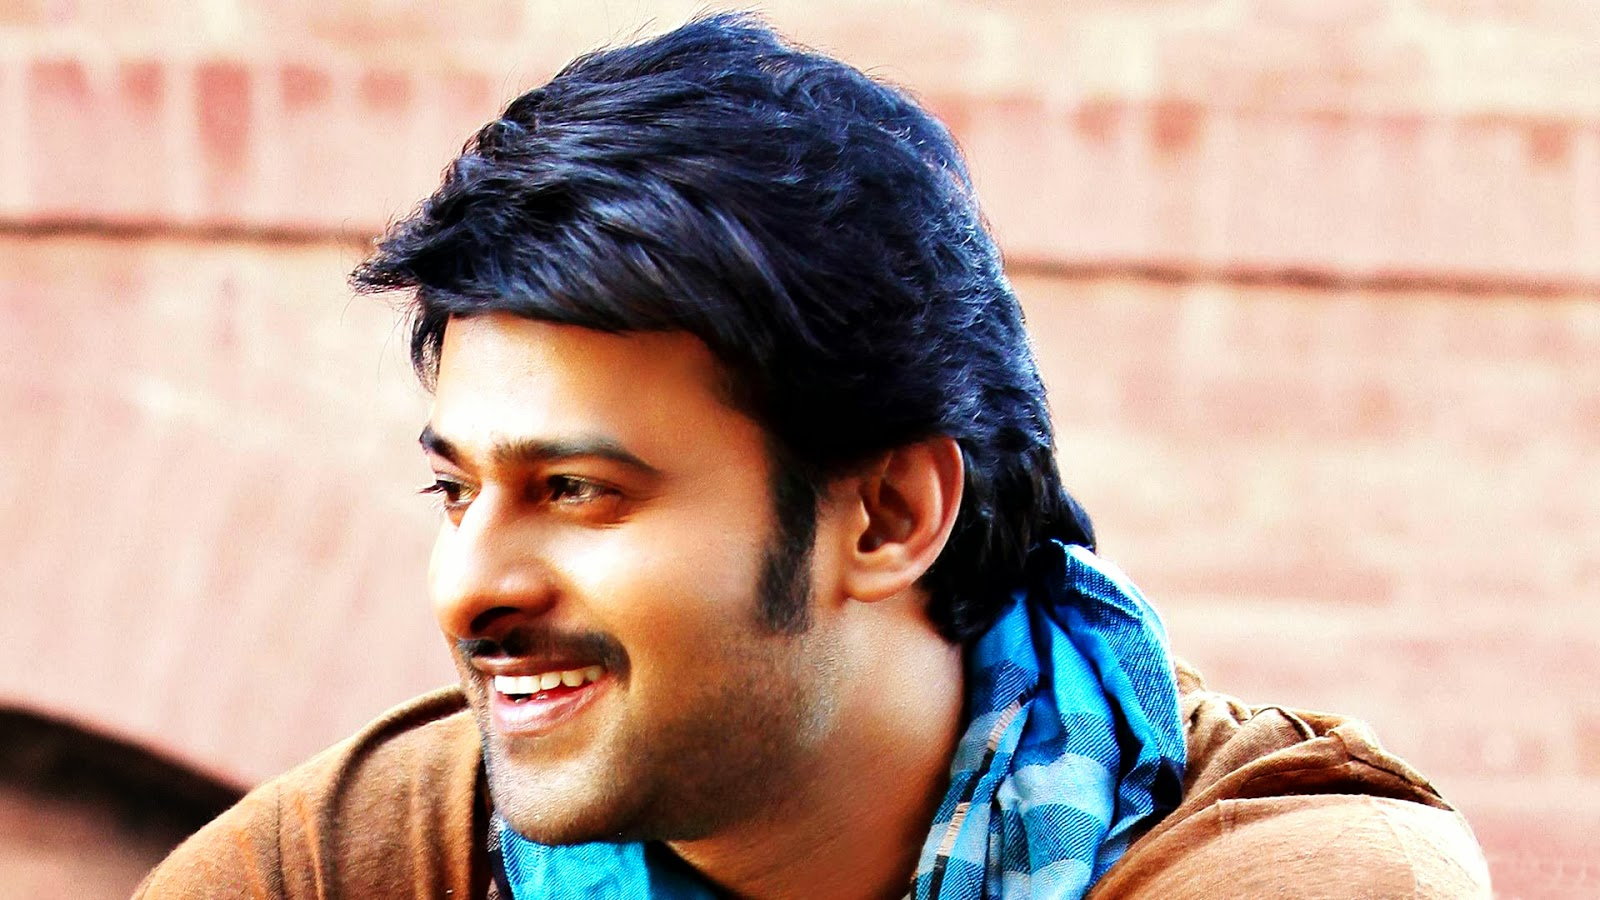 Stylish Prabhas Hq Wallpaper In Rebel: Mirchi Wallpapers Set 3